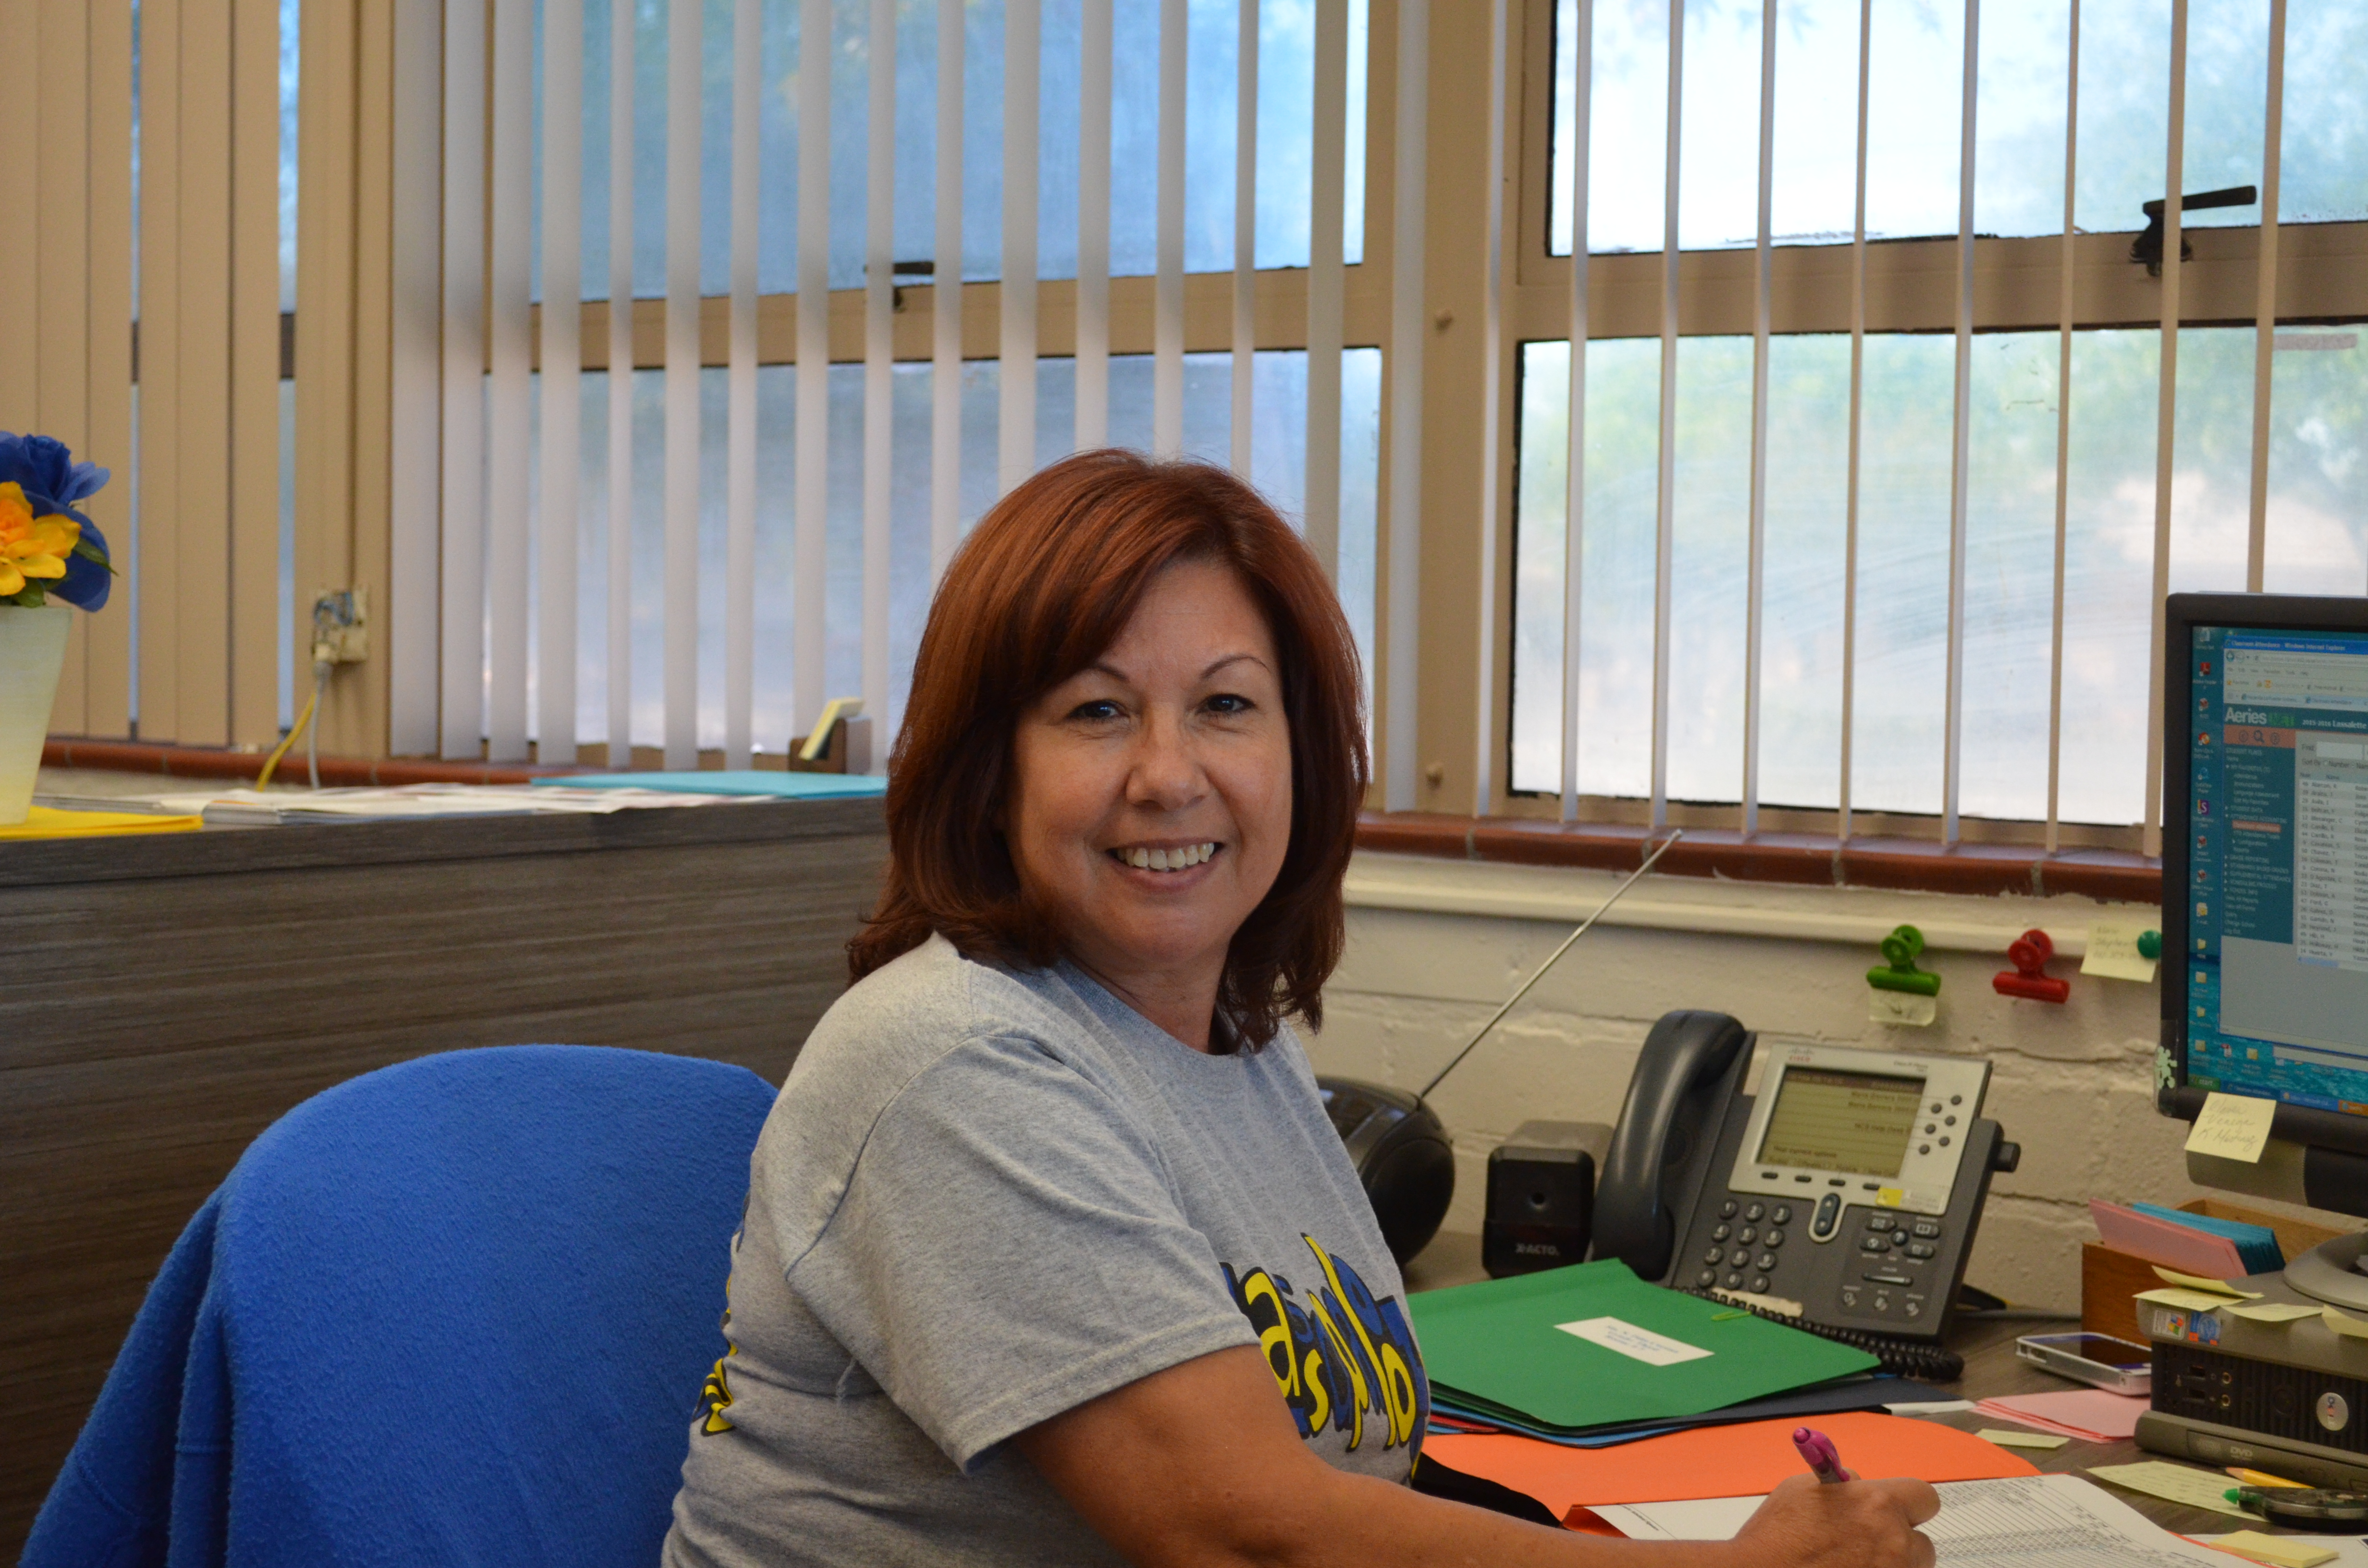 Assistant Manager-Mrs. Barrera